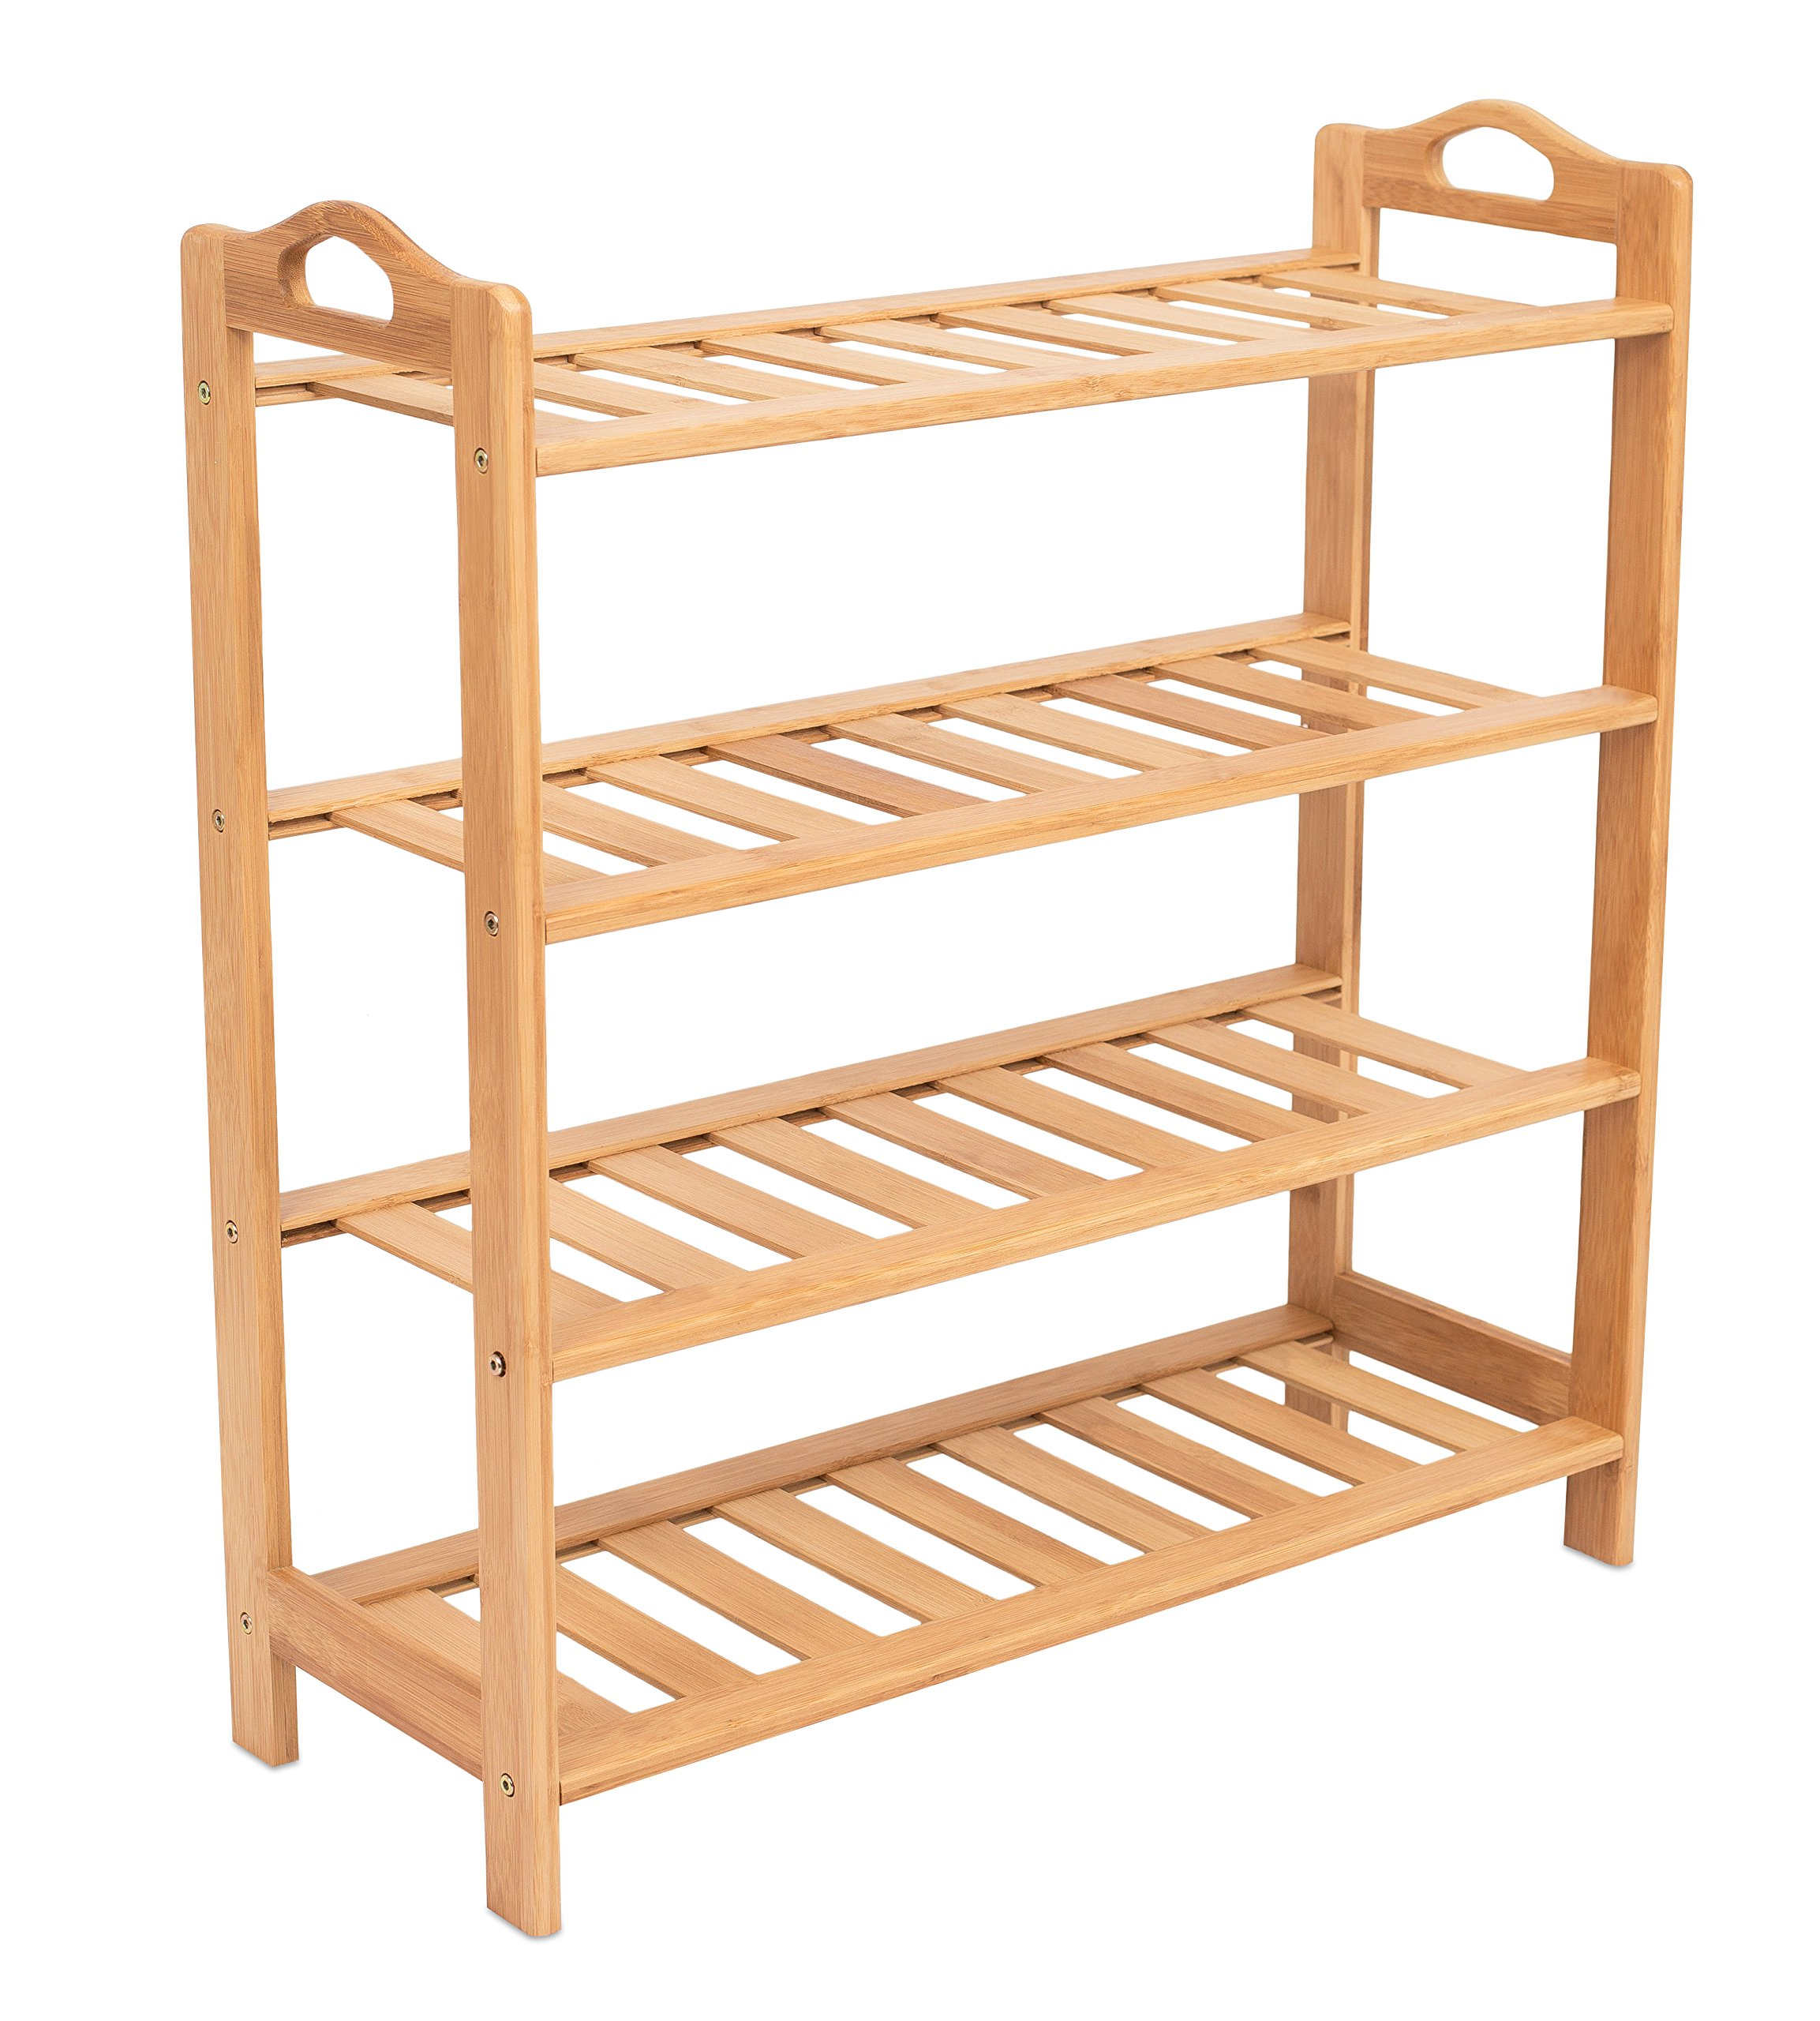 BirdRock Home Free Standing Bamboo Shoe Rack with Handles | 4 Tier | Wood | Closets and Entryway | Organizer | Fits 12 Pairs of Shoes